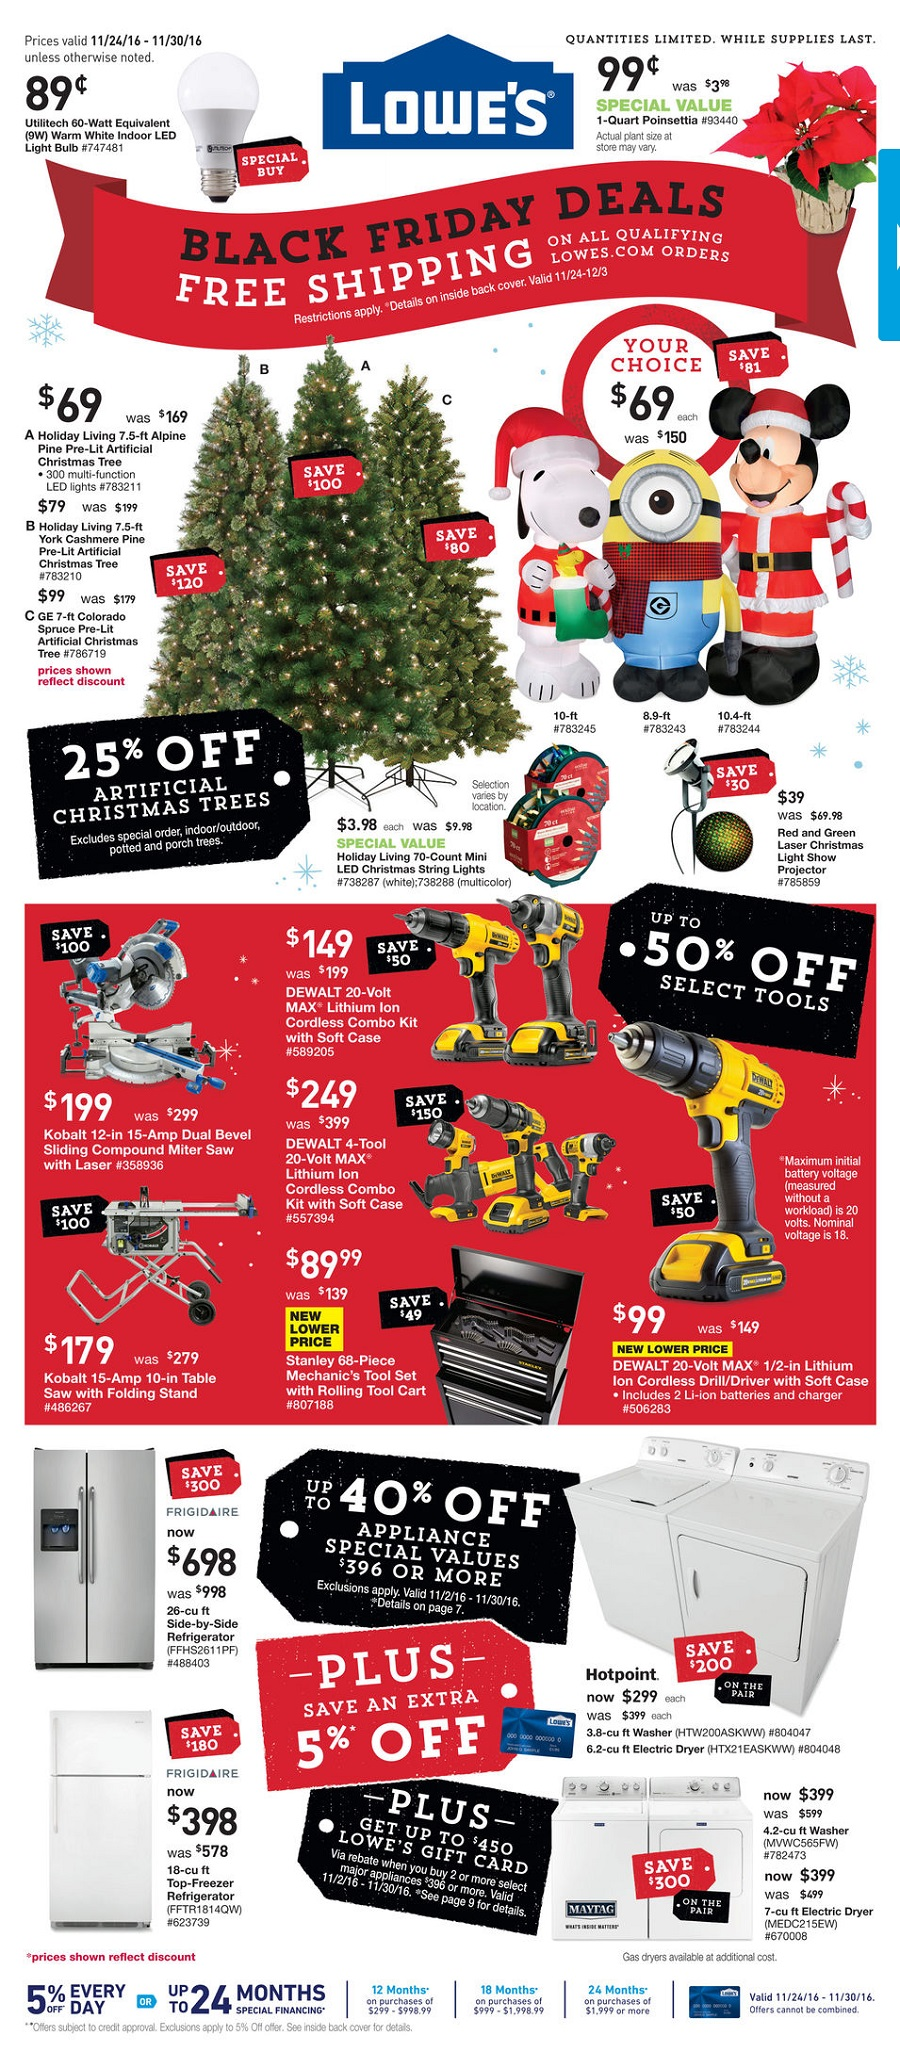 Lowe's 2016 Black Friday Ad Page 1